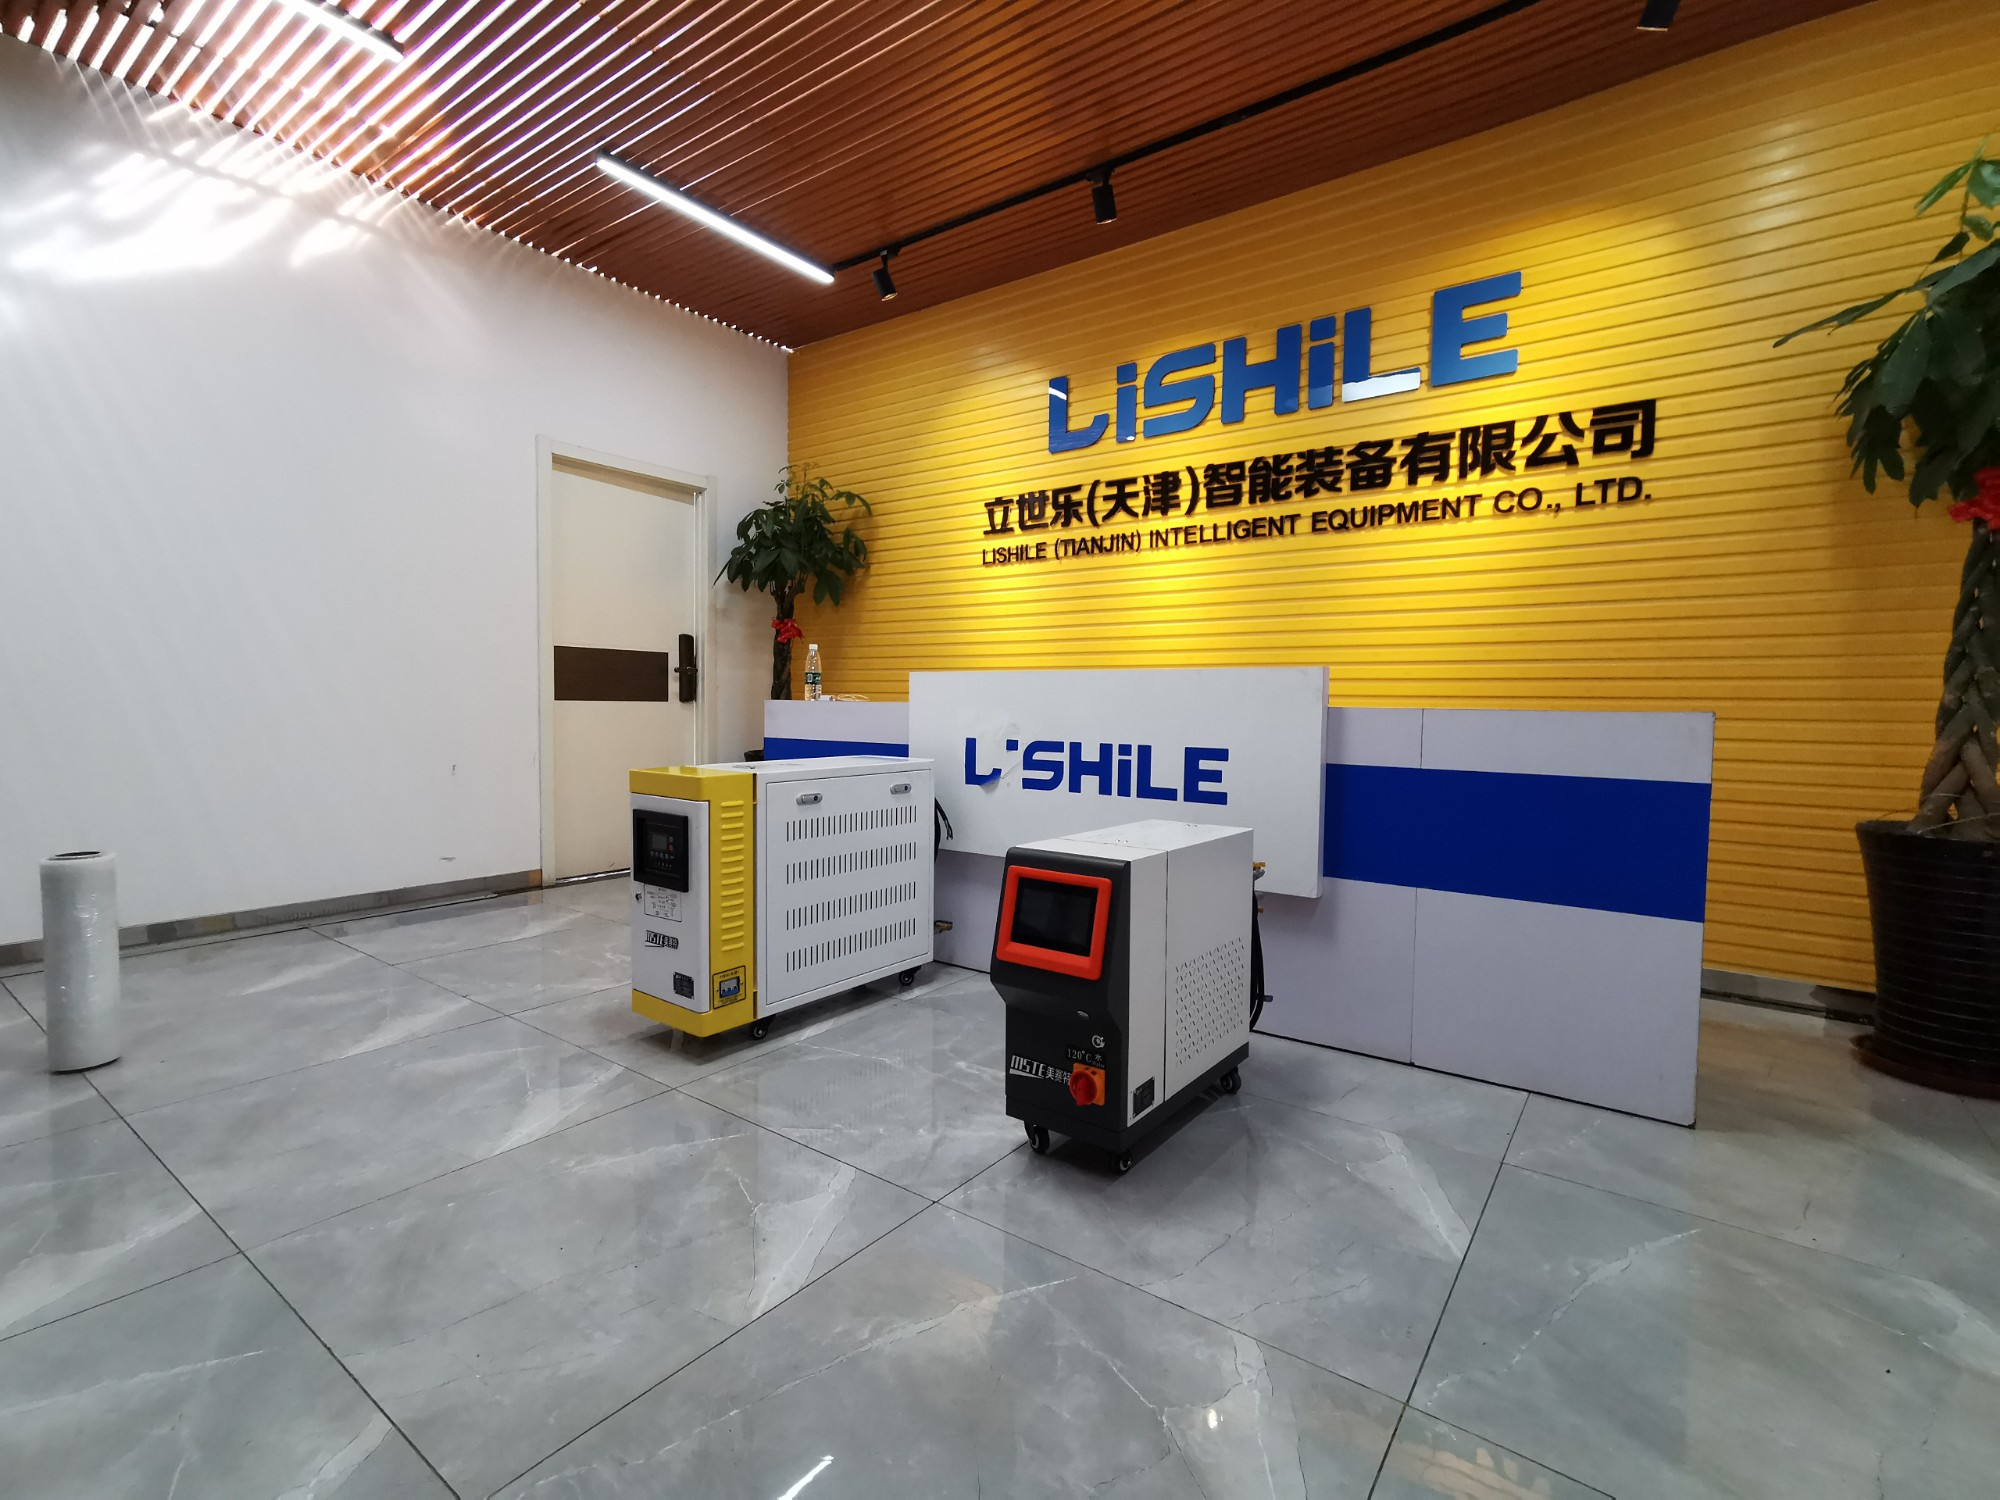 LISHILE (Tianjin) Intelligent Equipment Co., Ltd.